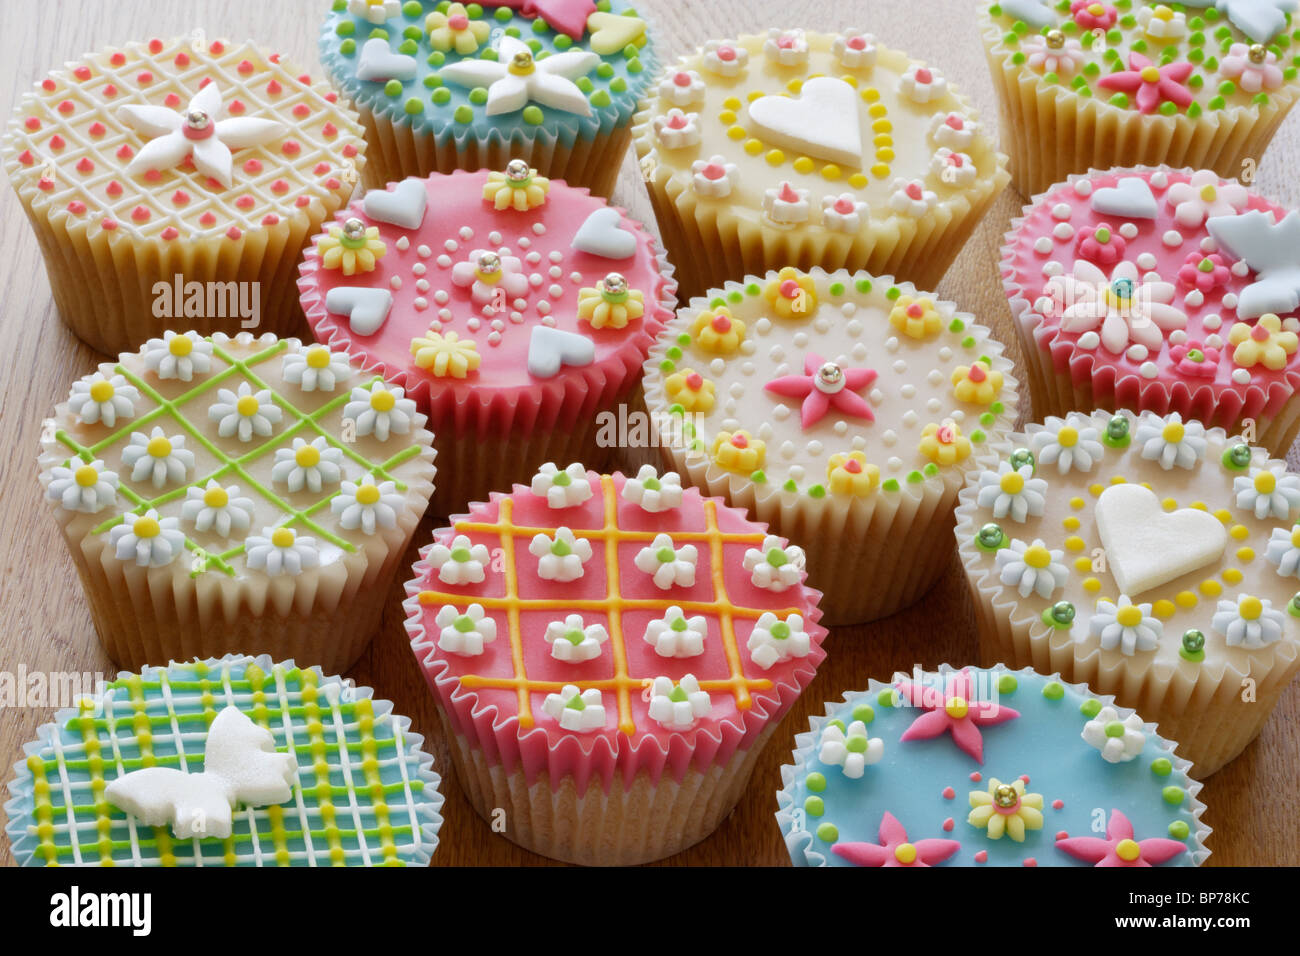 Highly decorated cupcakes or fairy cakes stock photo for Fairy cakes